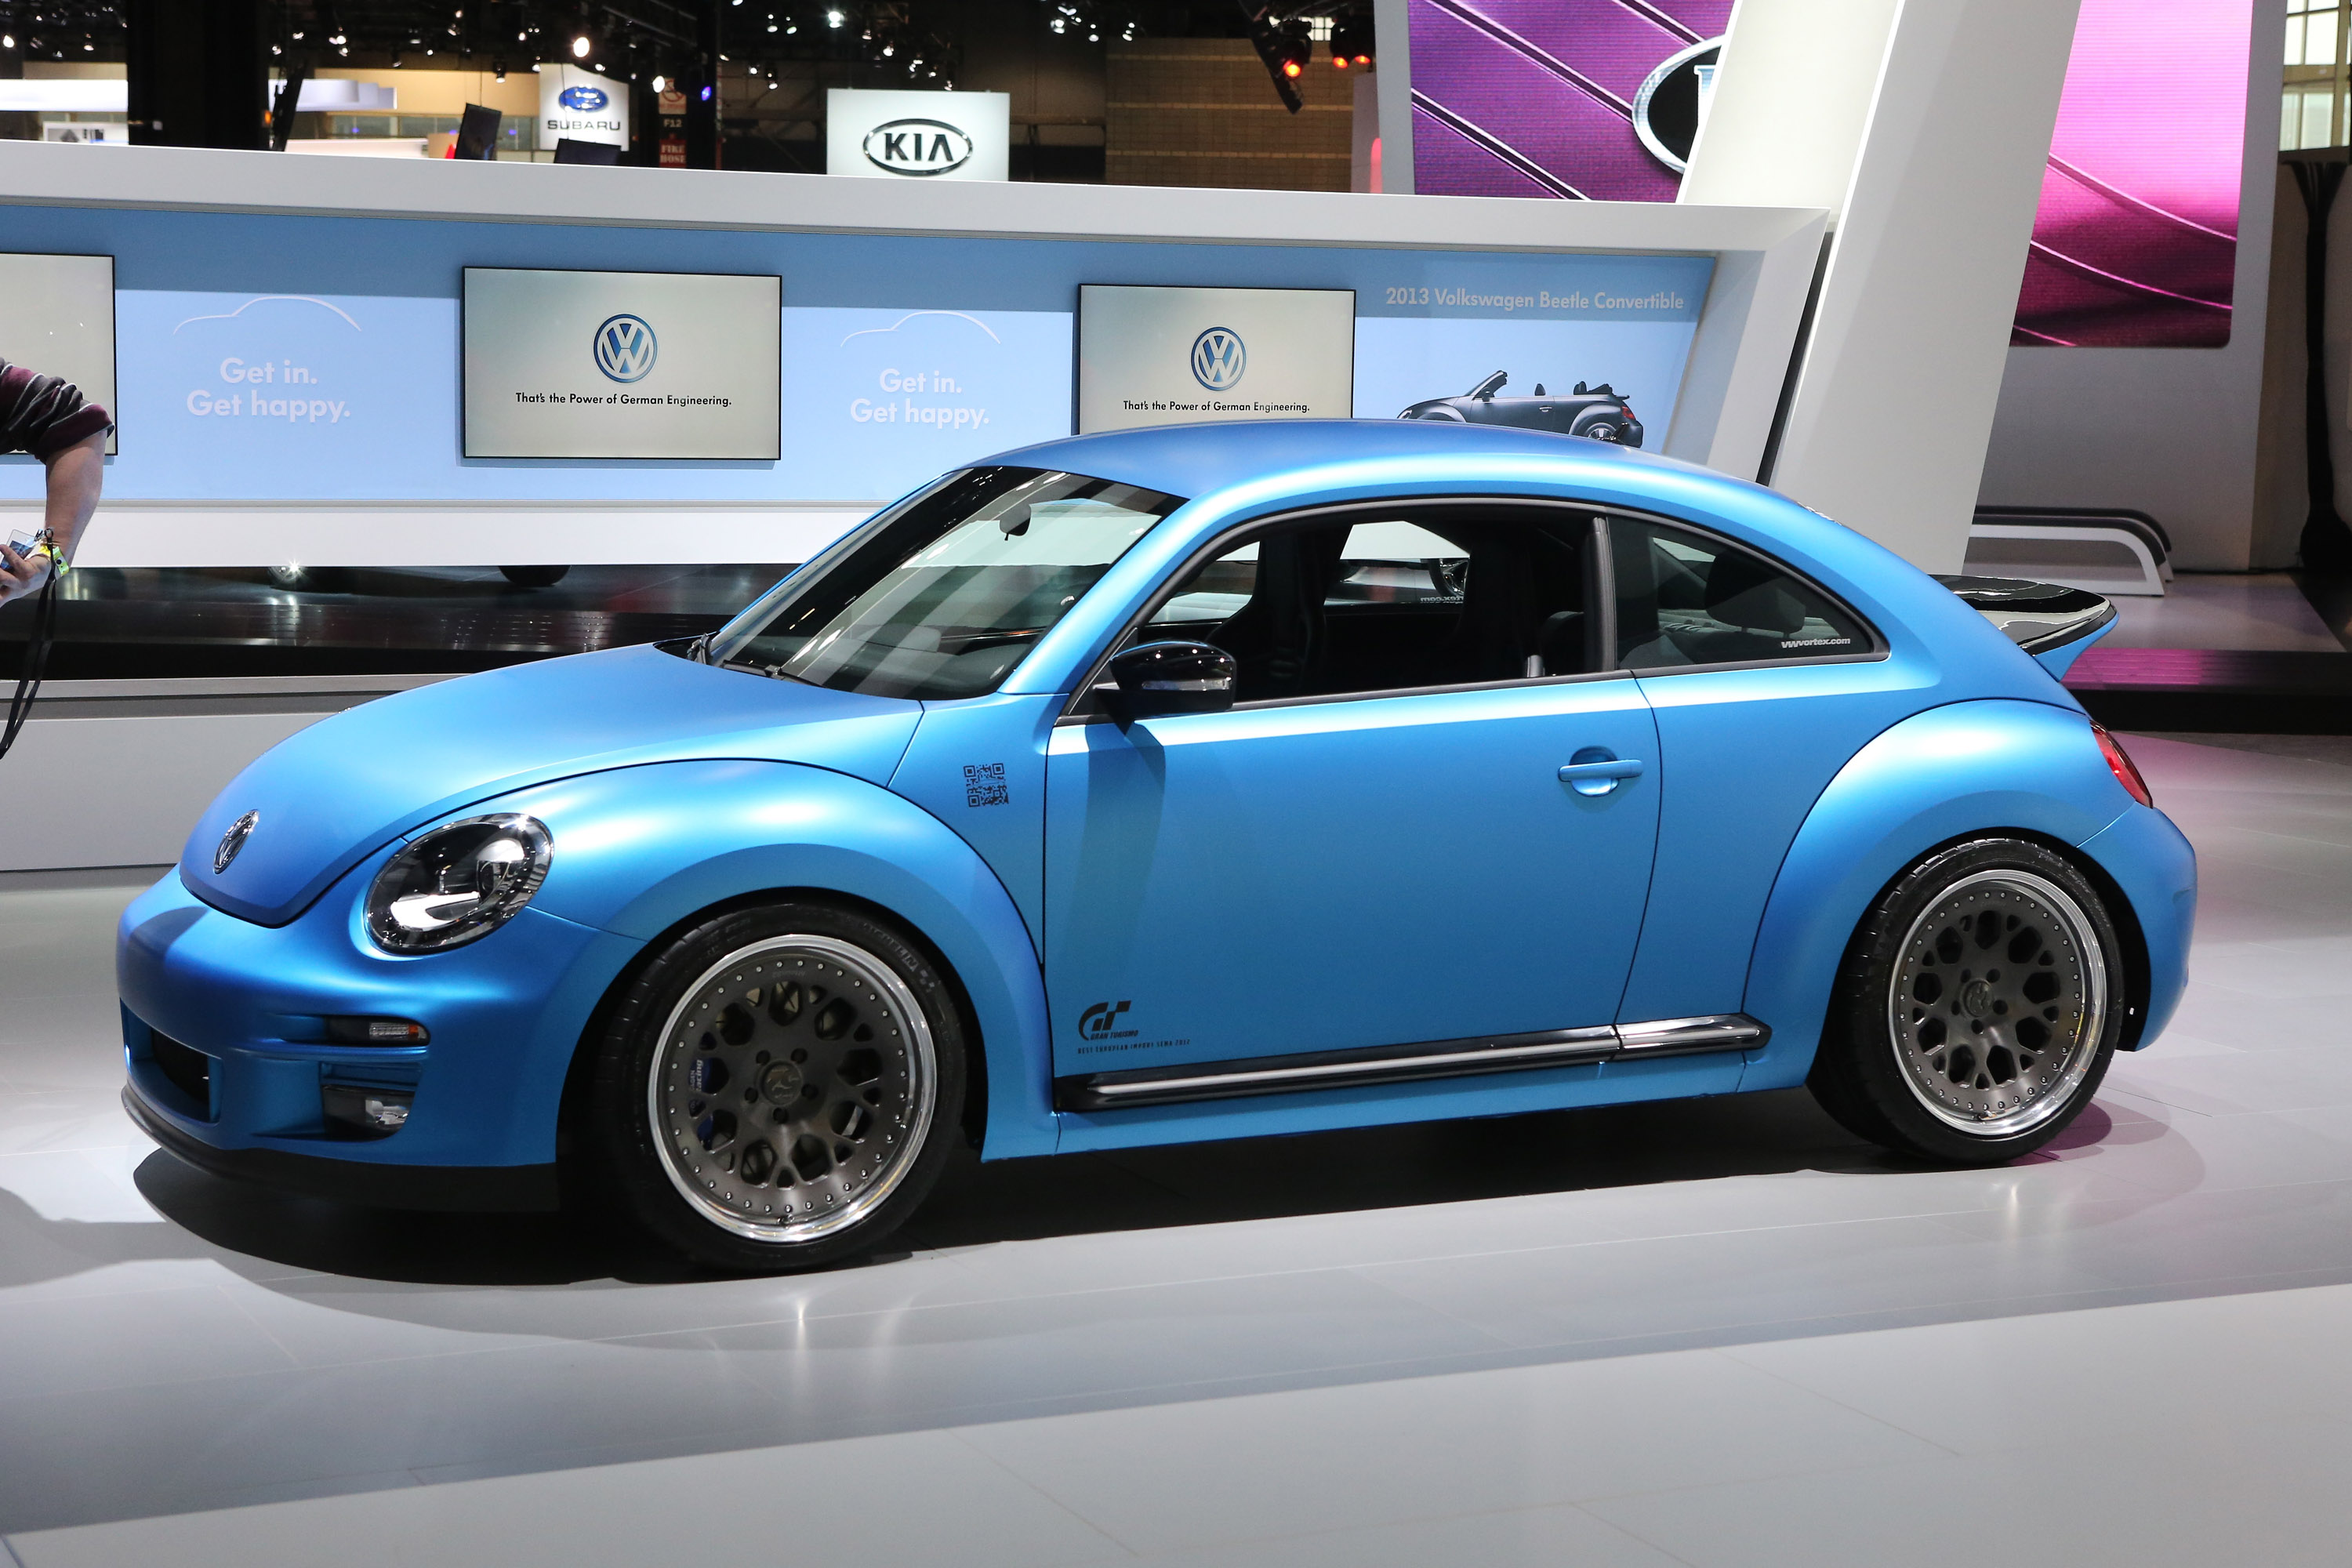 2013 volkswagen super beetle tuning j wallpaper 3000x2000 200104 wallpaperup. Black Bedroom Furniture Sets. Home Design Ideas